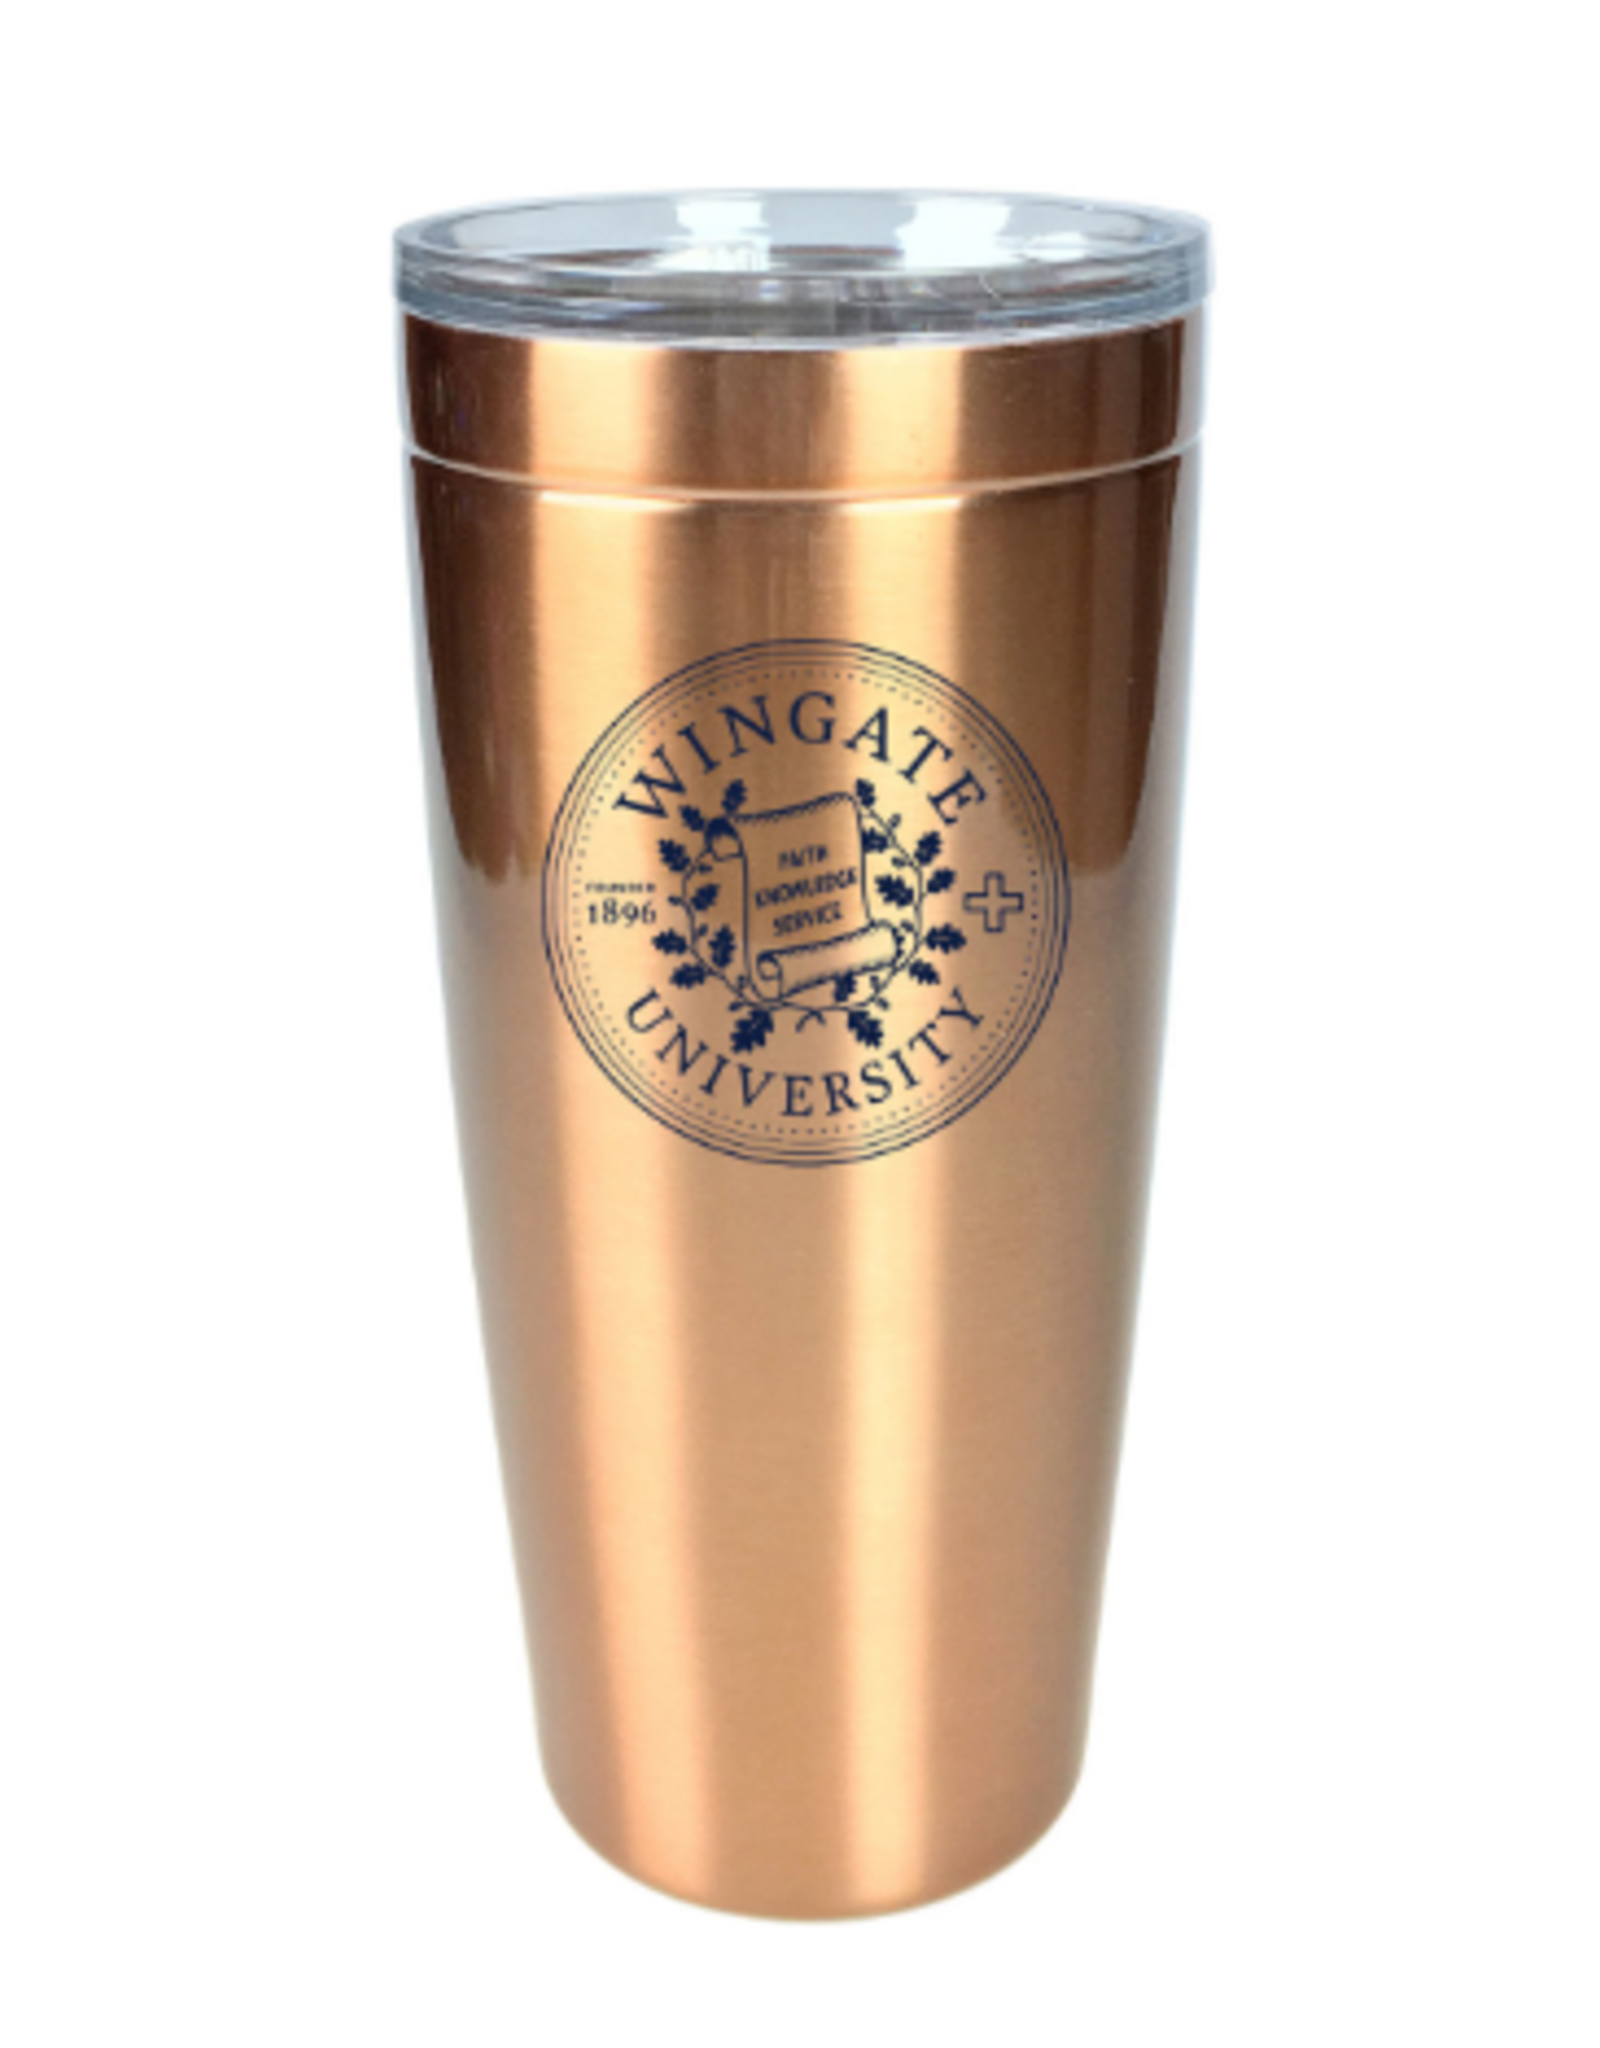 20oz Copper Stainless Seal Viking Nova Tumbler